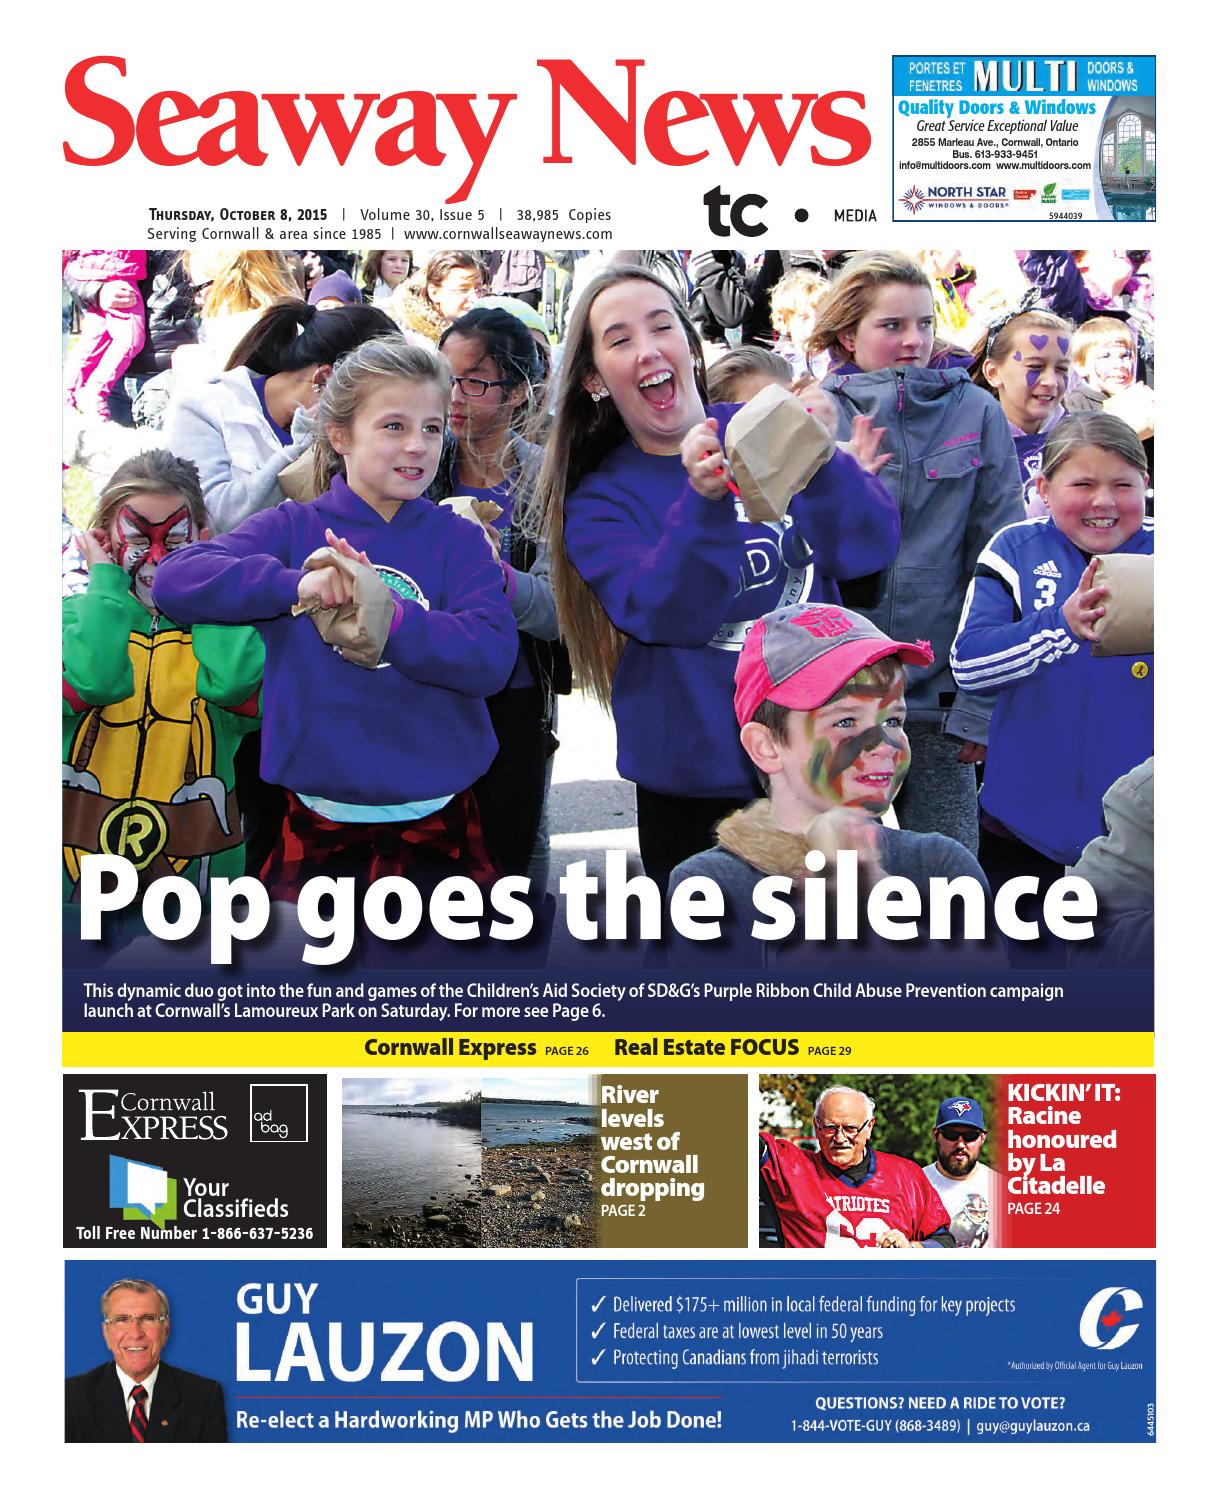 Cornwall seaway news october 8 2015 edition by cornwall seaway news cornwall seaway news october 8 2015 edition by cornwall seaway news issuu fandeluxe Gallery